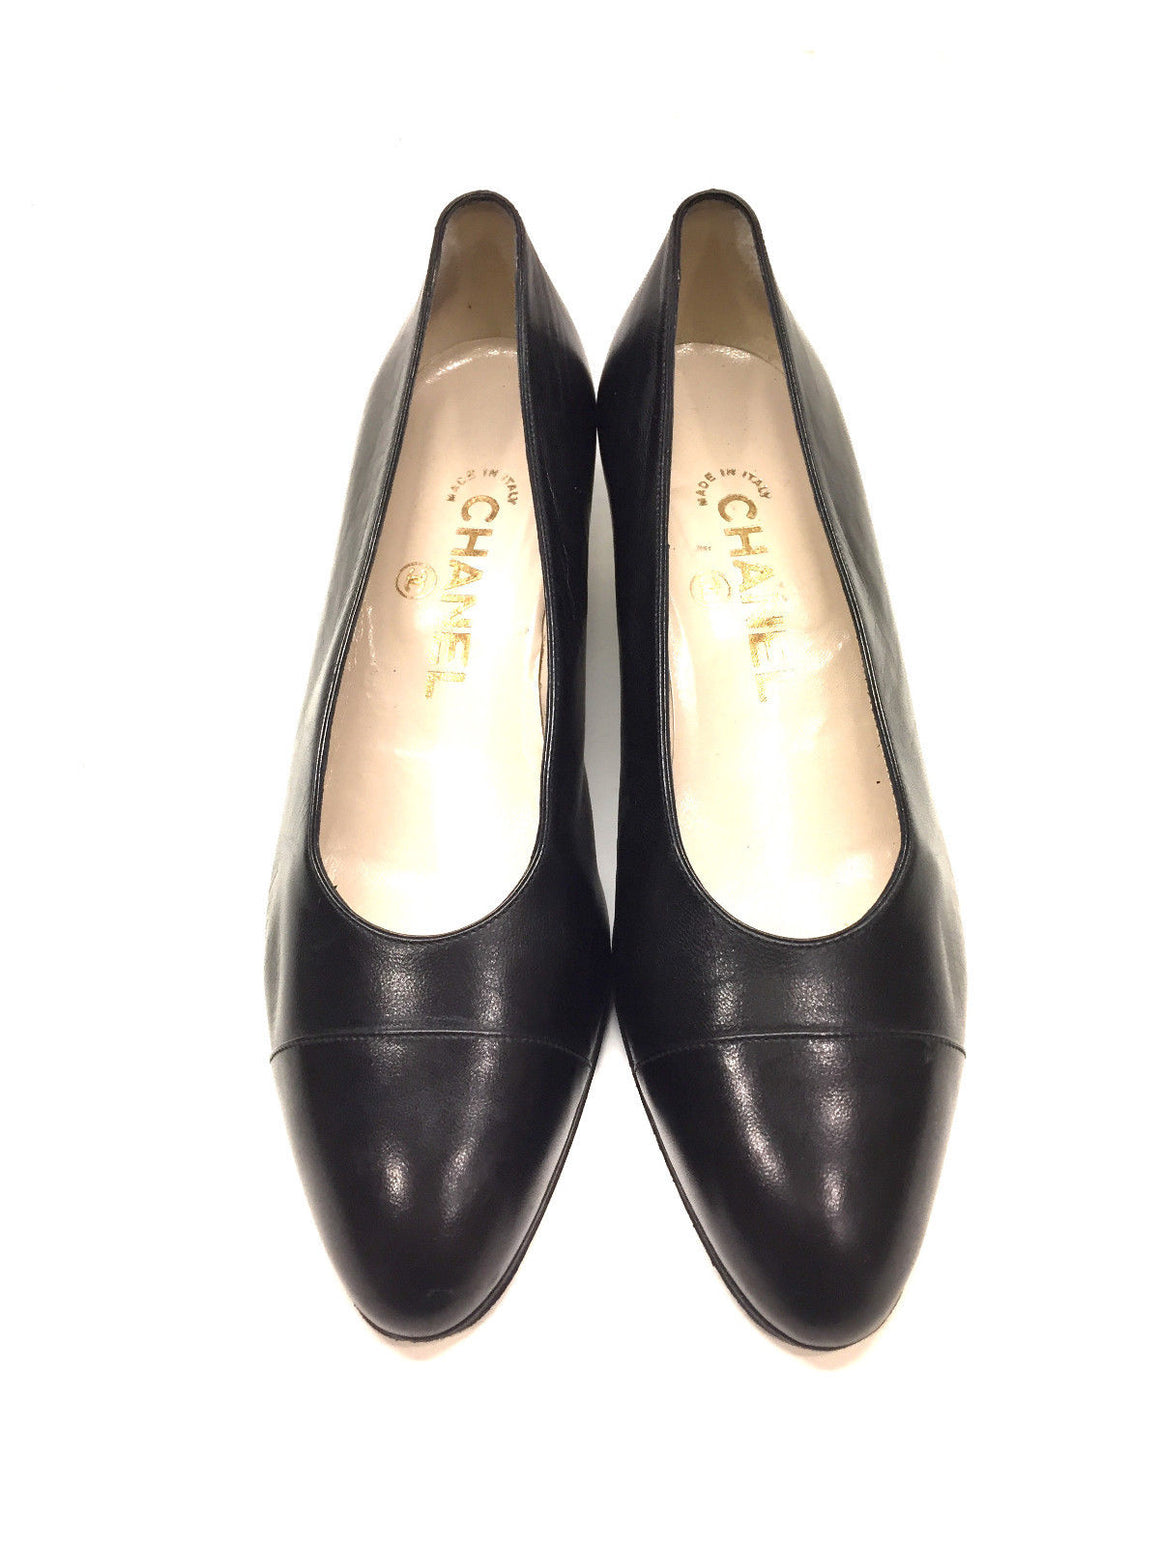 bisbiz.com CHANEL Vintage Black Leather Cap-Toe Chunky Kitten-Heel Pumps Size: 36.5 / 6.5 - Bis Luxury Resale